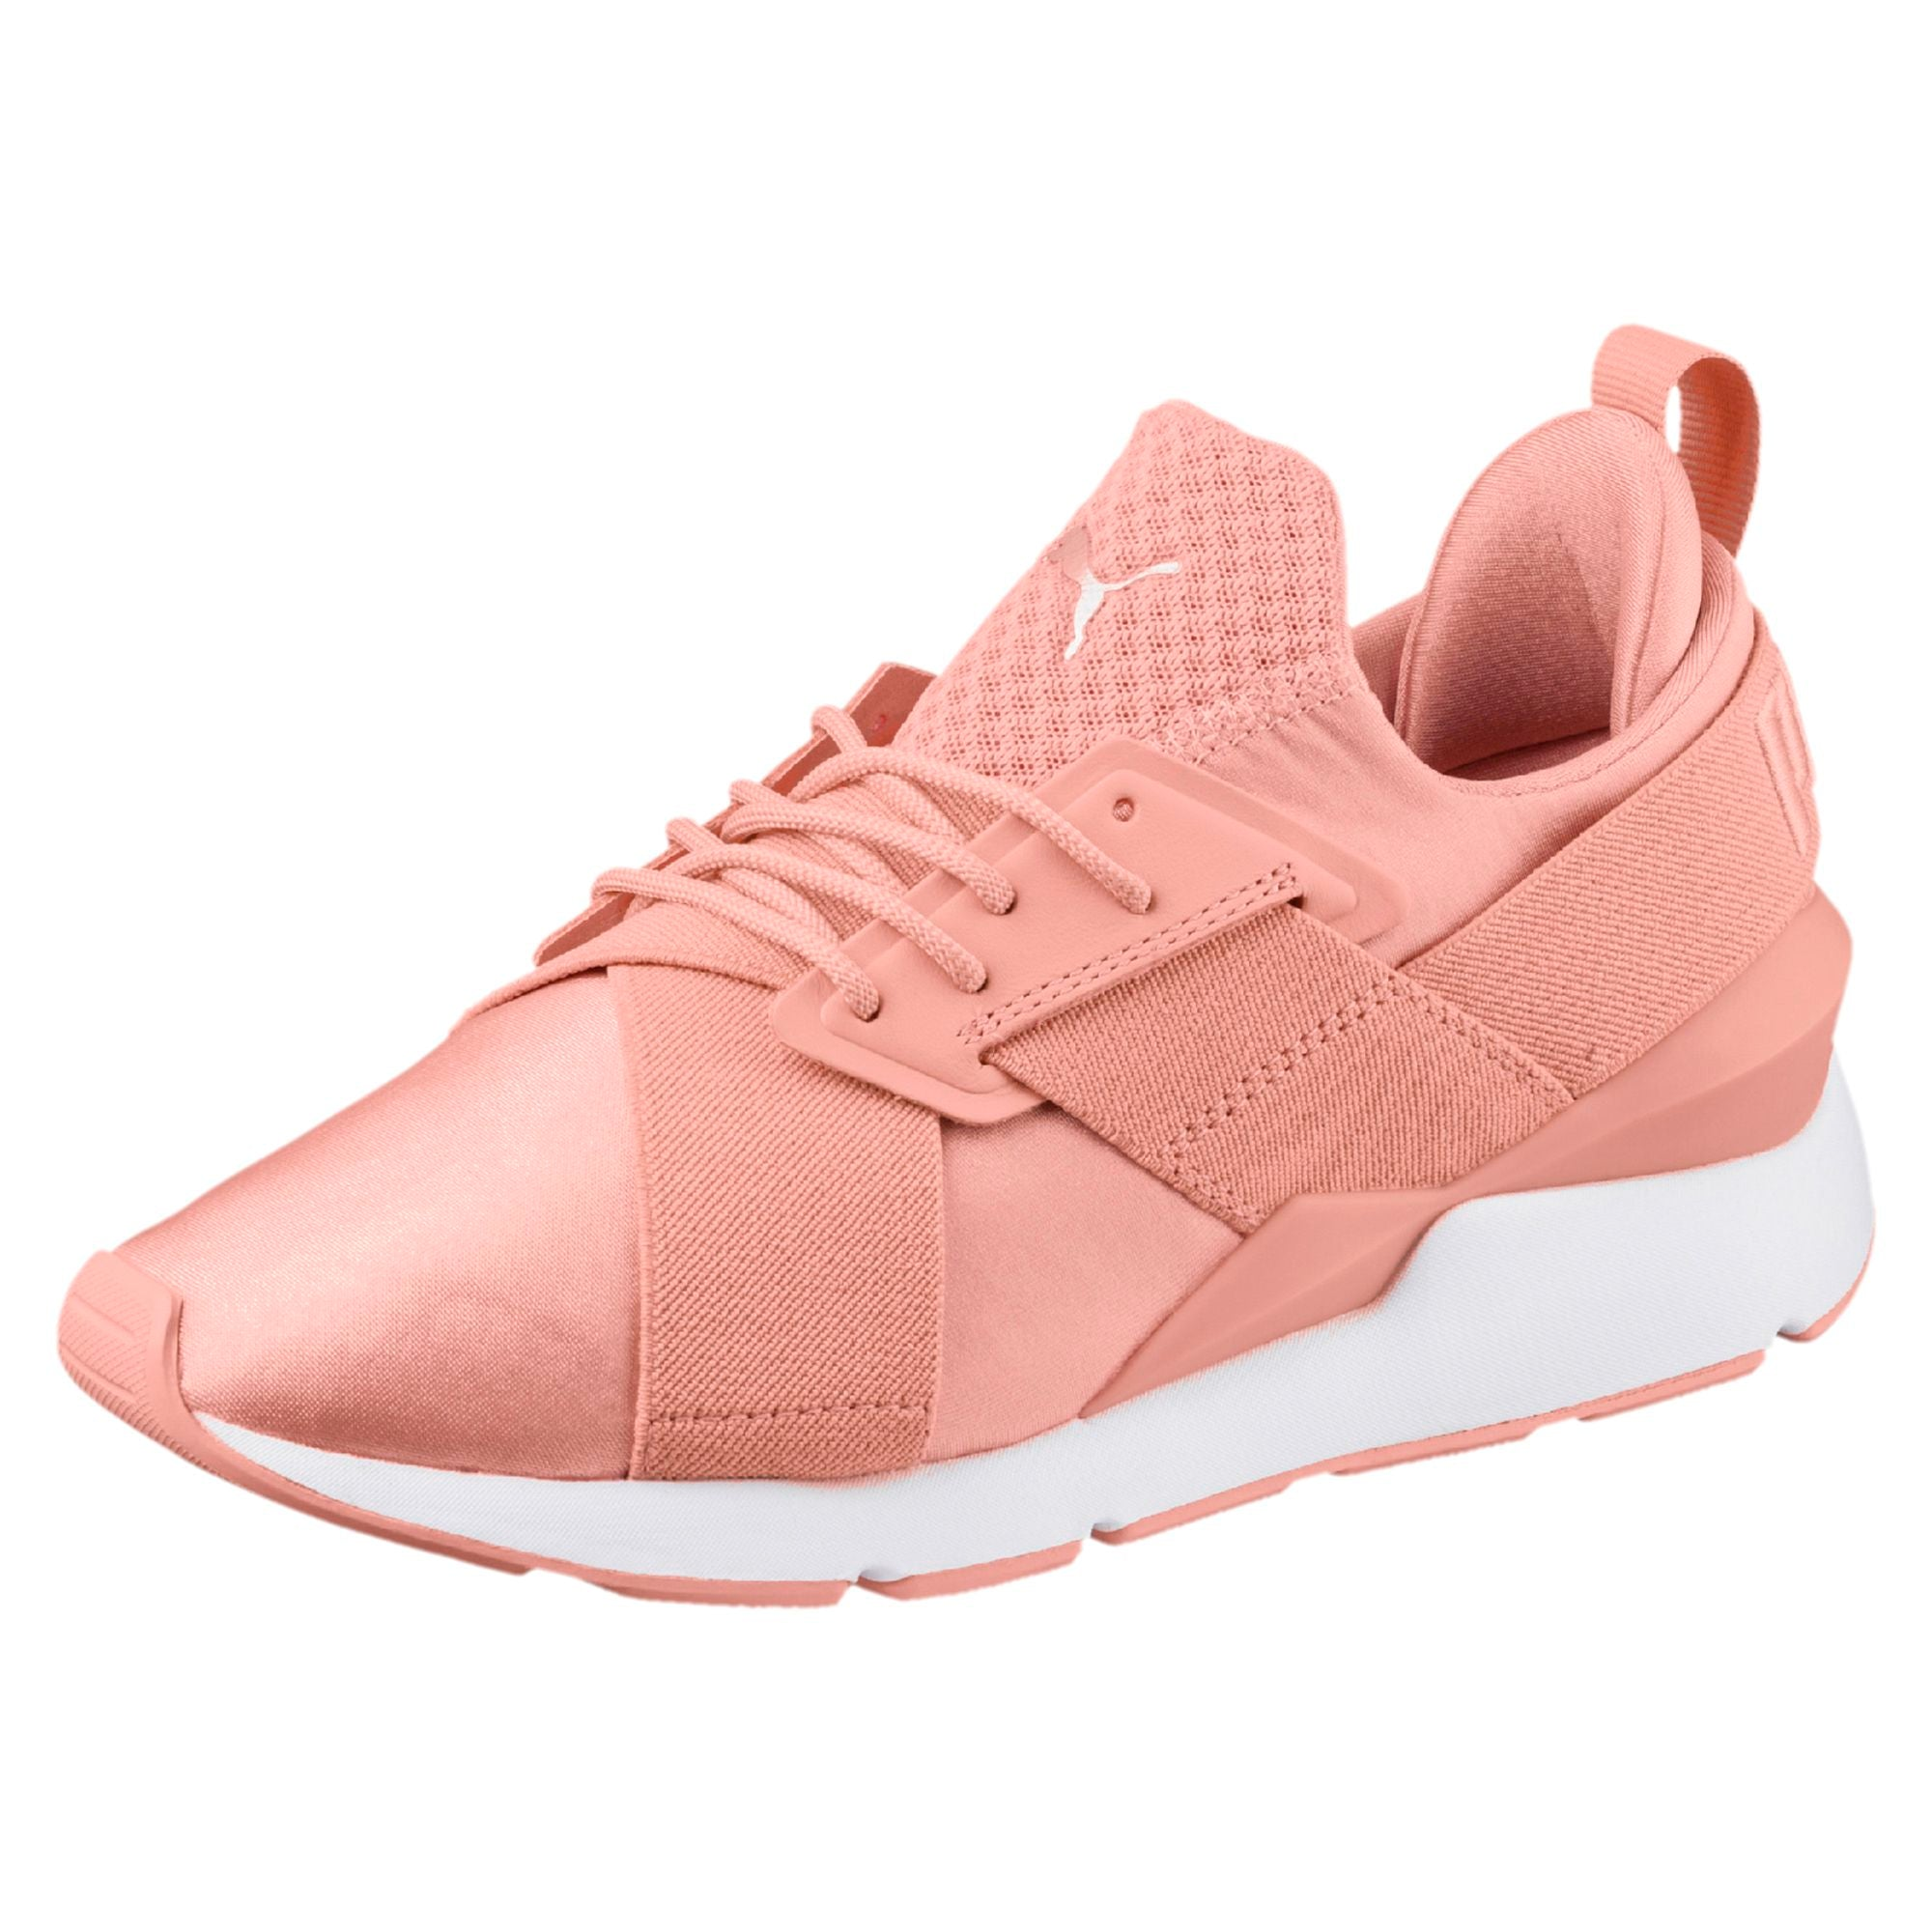 PUMA MUSE SATIN WOMEN'S SNEAKERS